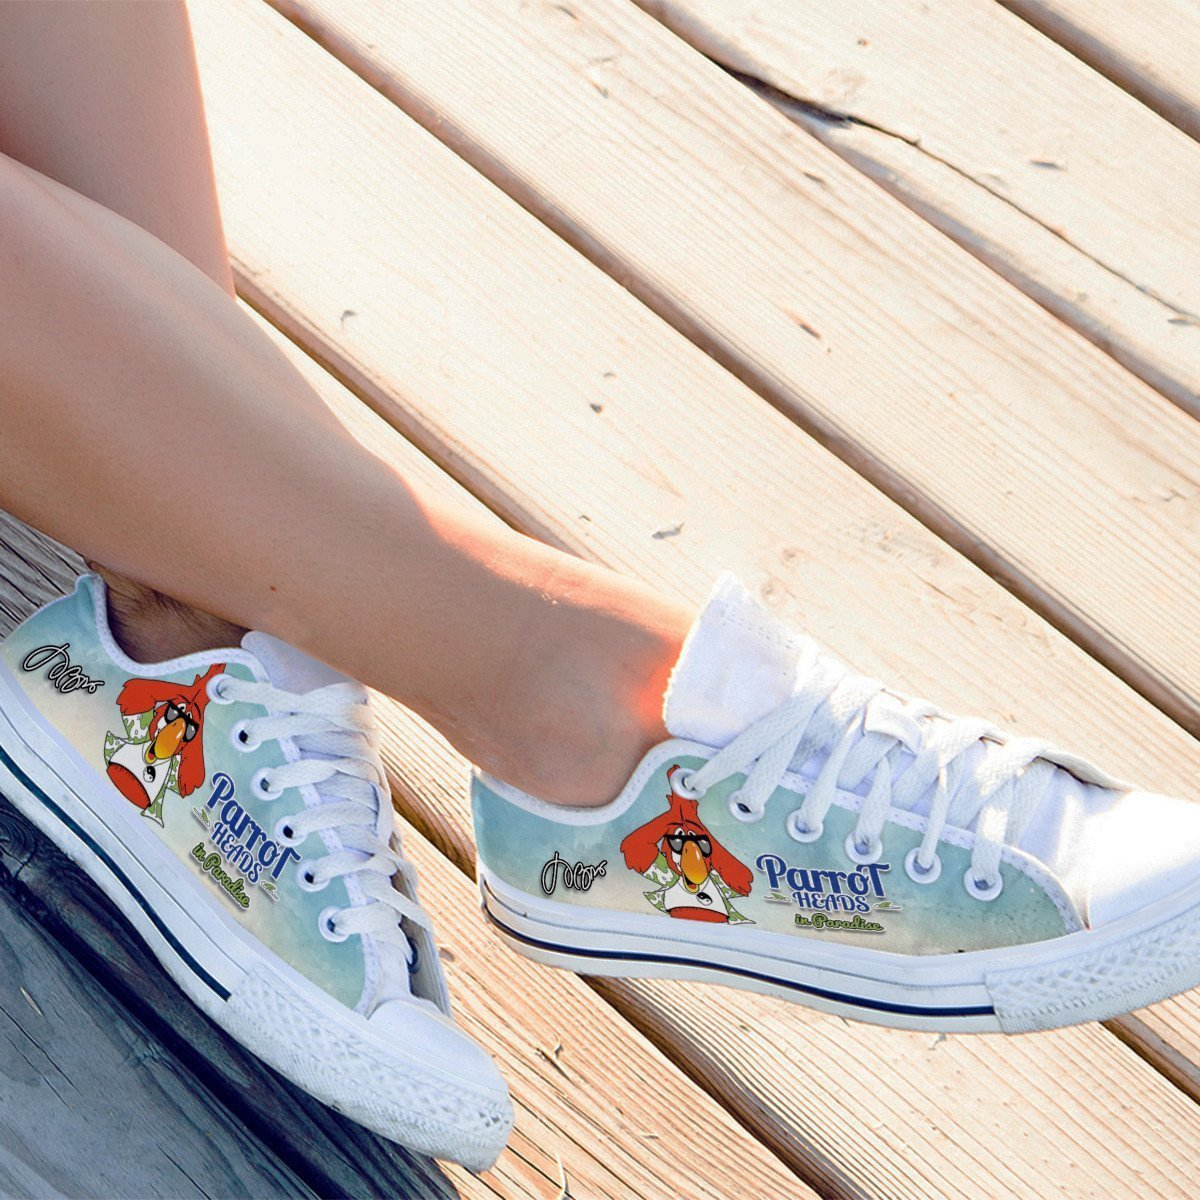 jimmy buffett parrotheads ladies low cut sneakers